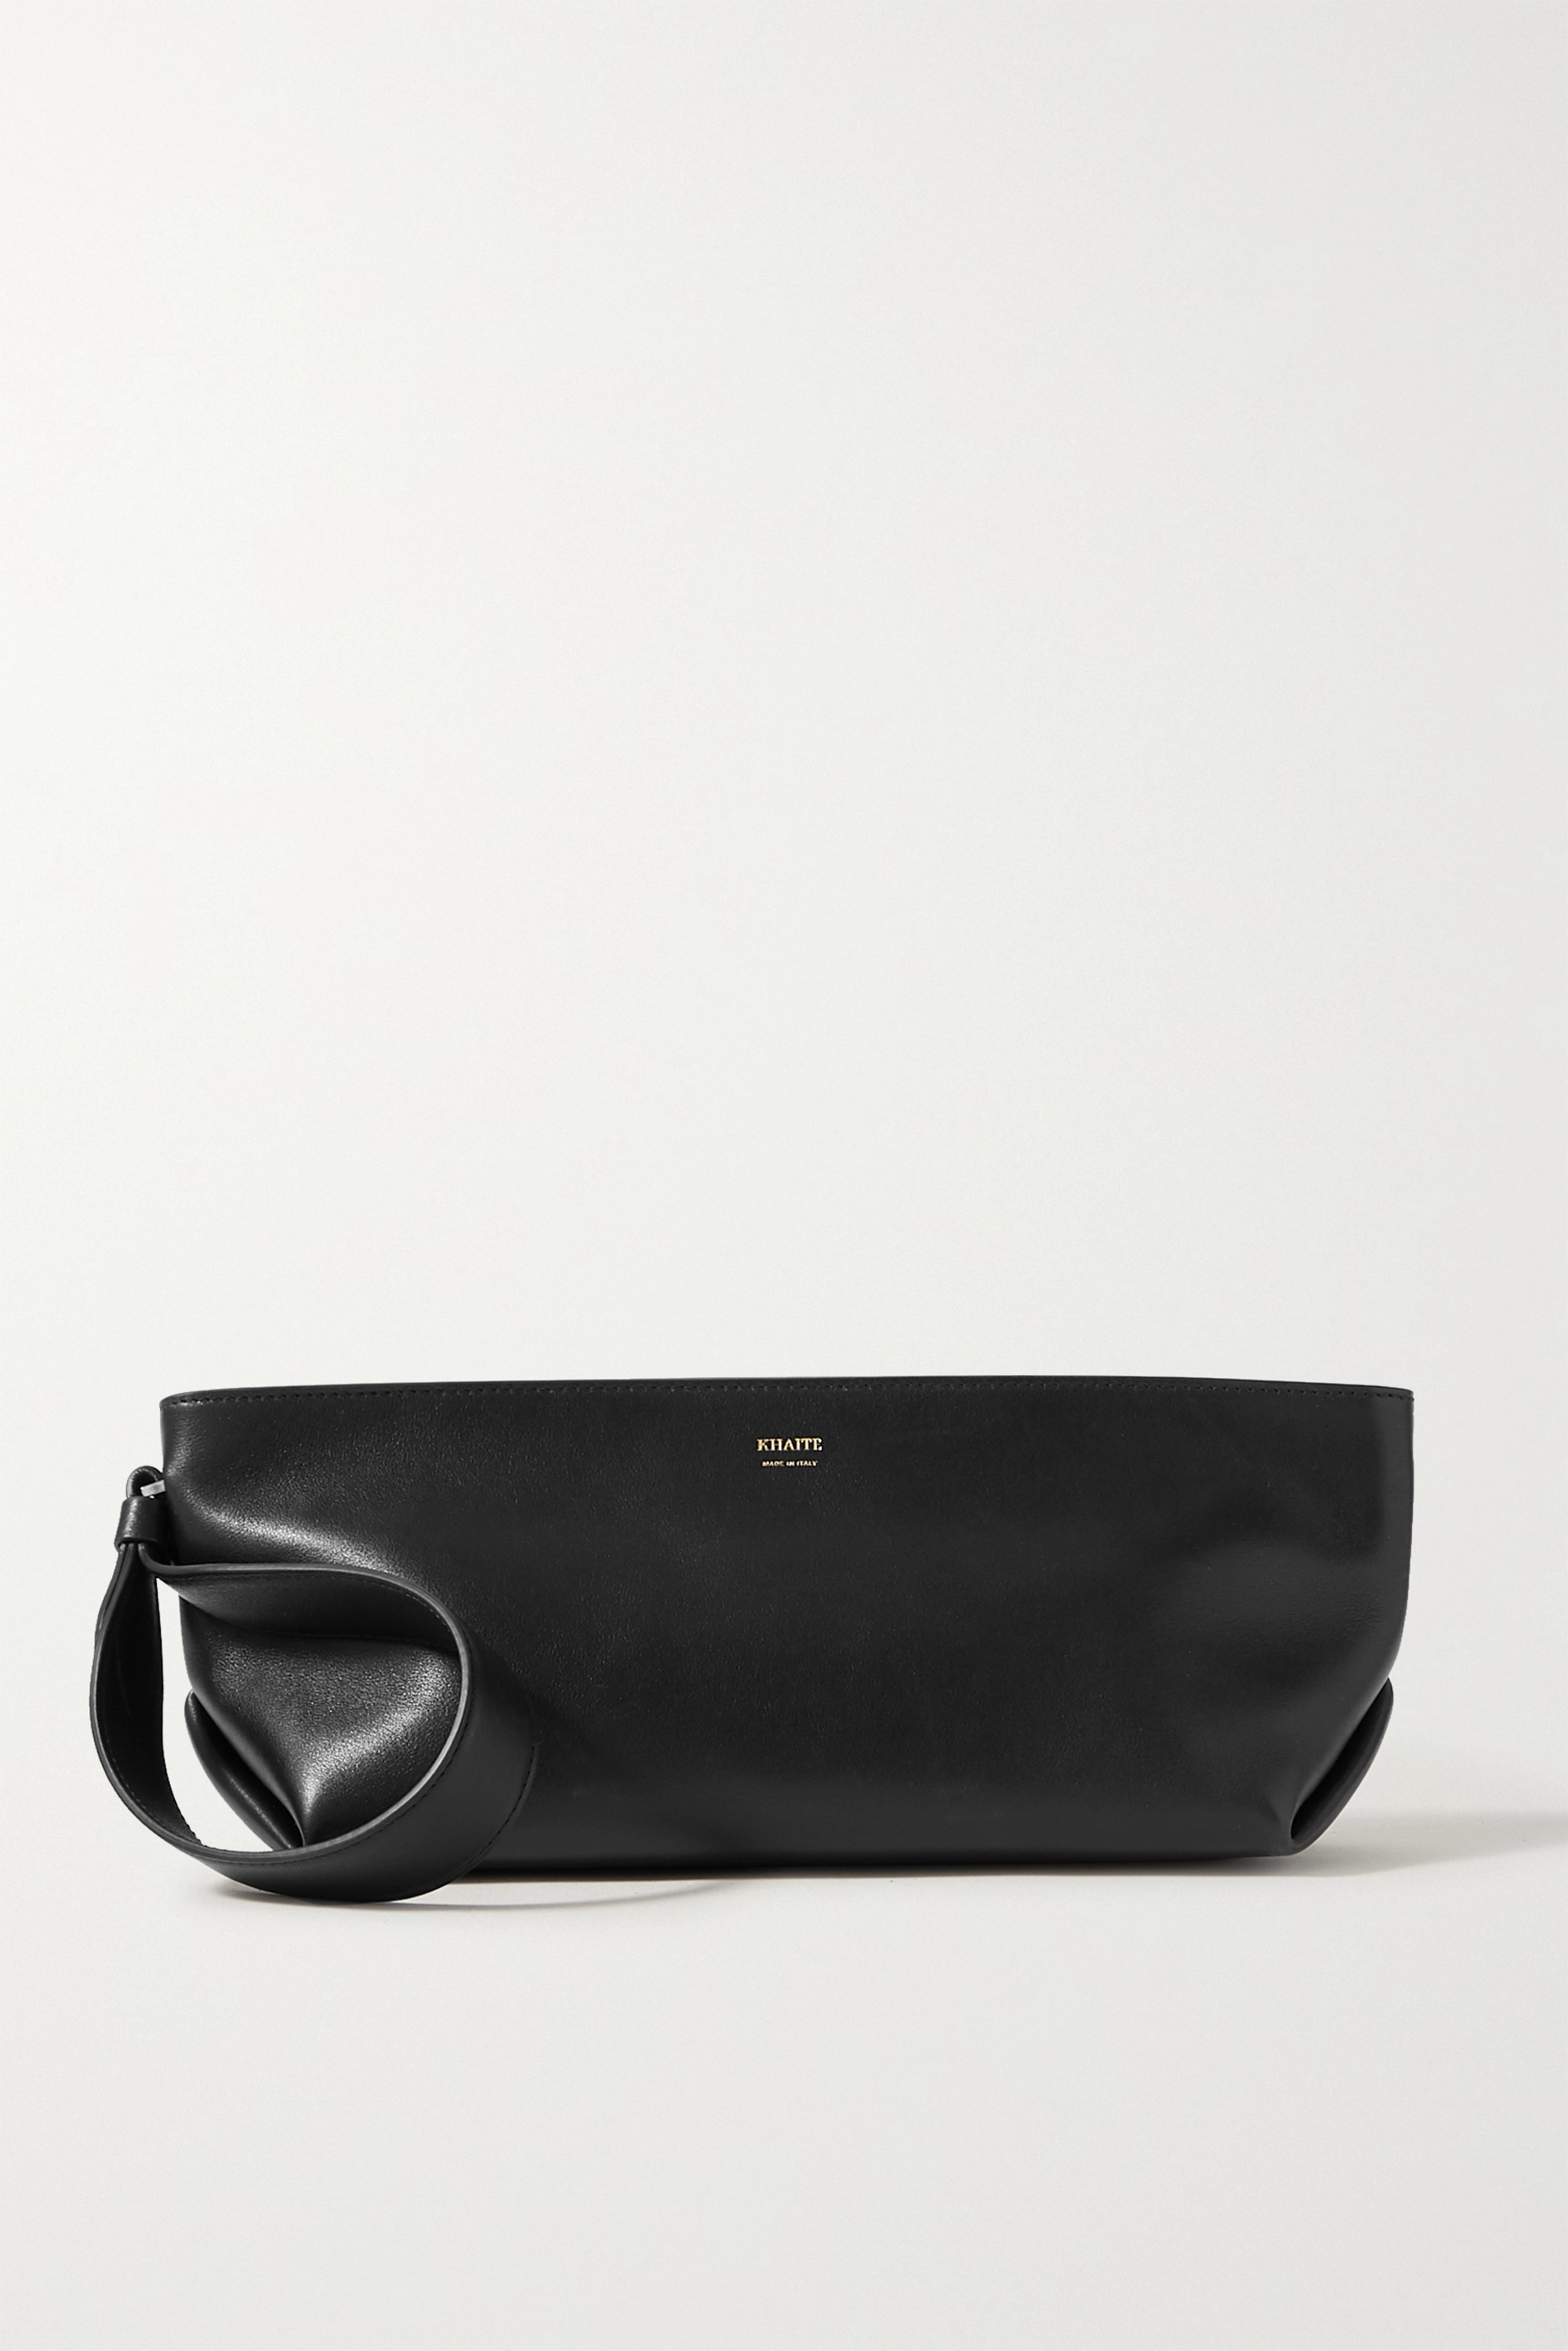 Khaite Alma small leather clutch